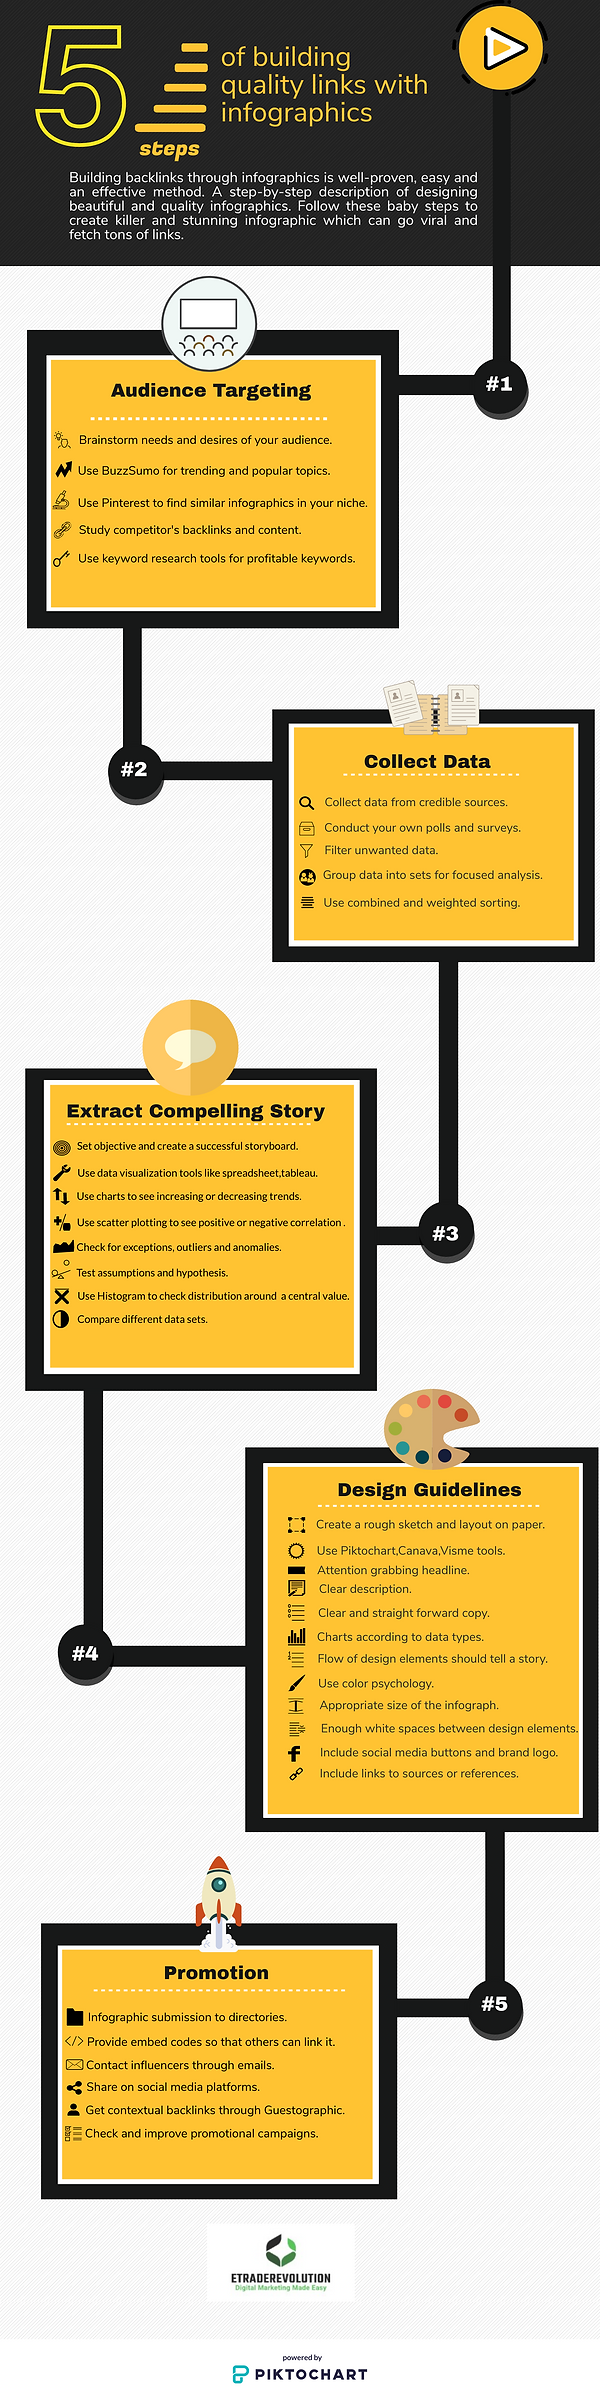 How to make infographic in 5 steps